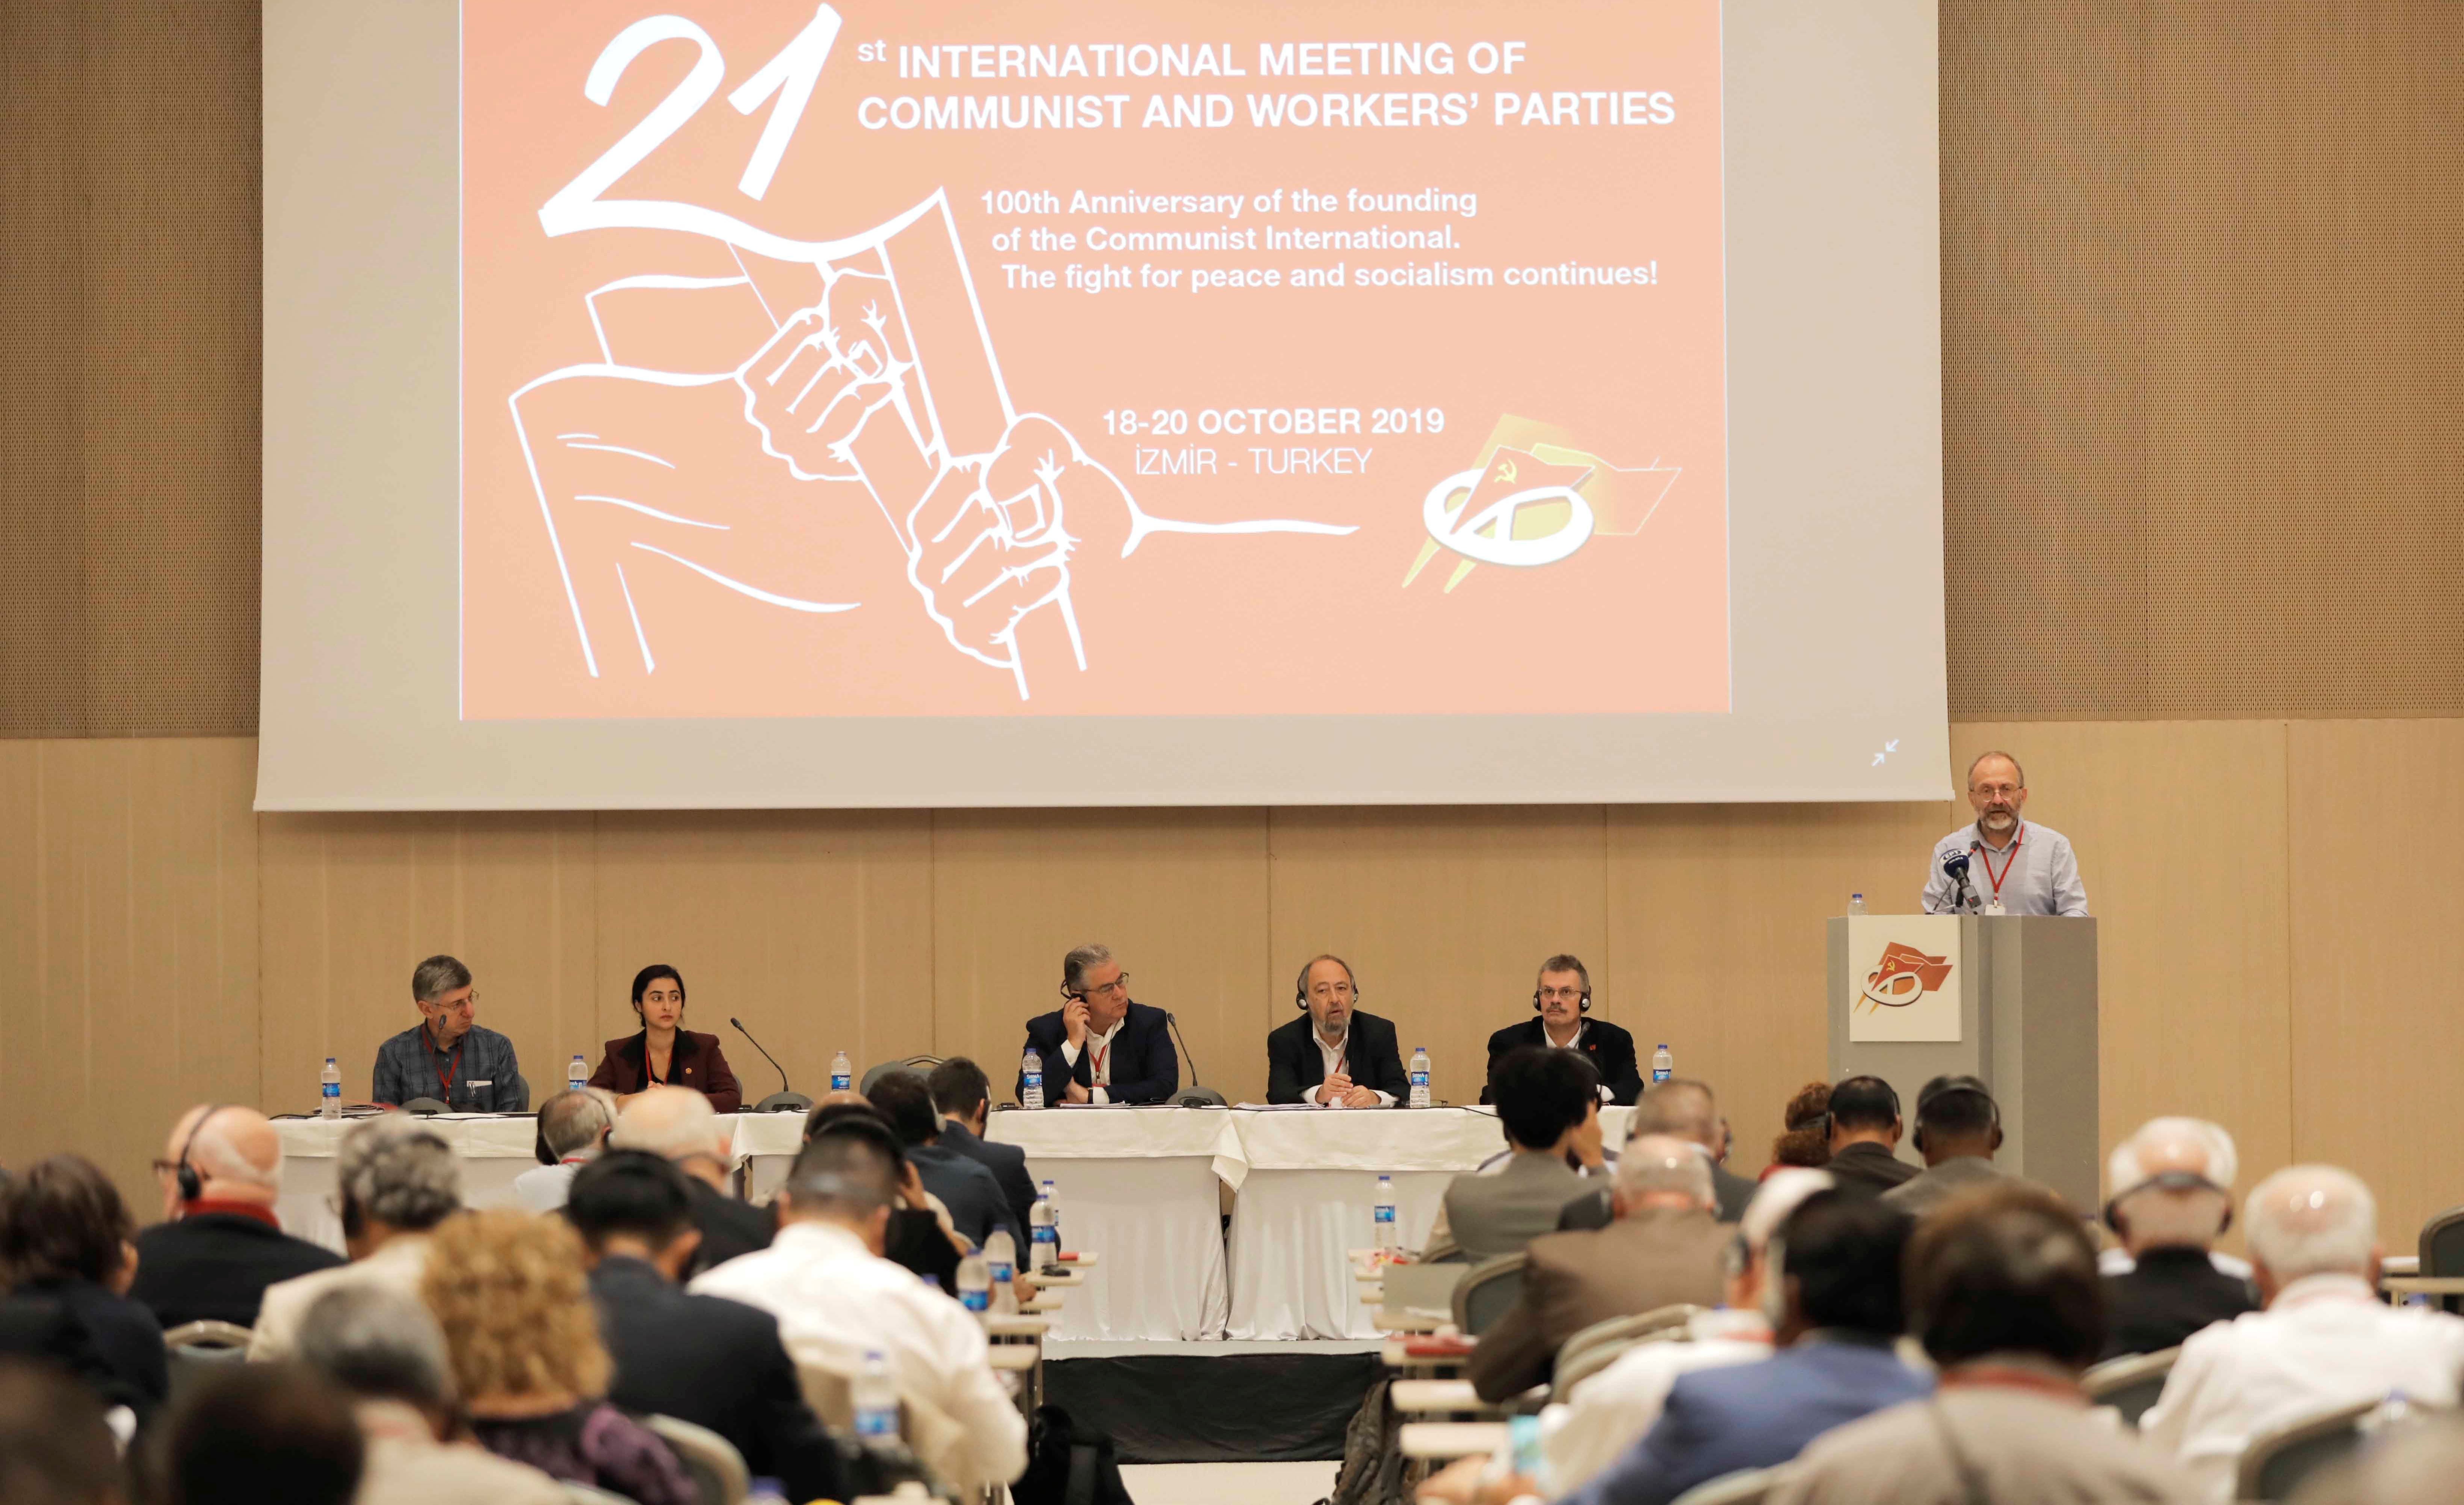 Communist Party of Turkey General Secretary, Kemal Okuyan, address delegates at the opening session of the 21st International Meeting of Communist and Workers' Parties held in Izmir, Turkey,  Friday, October 18, 2019..